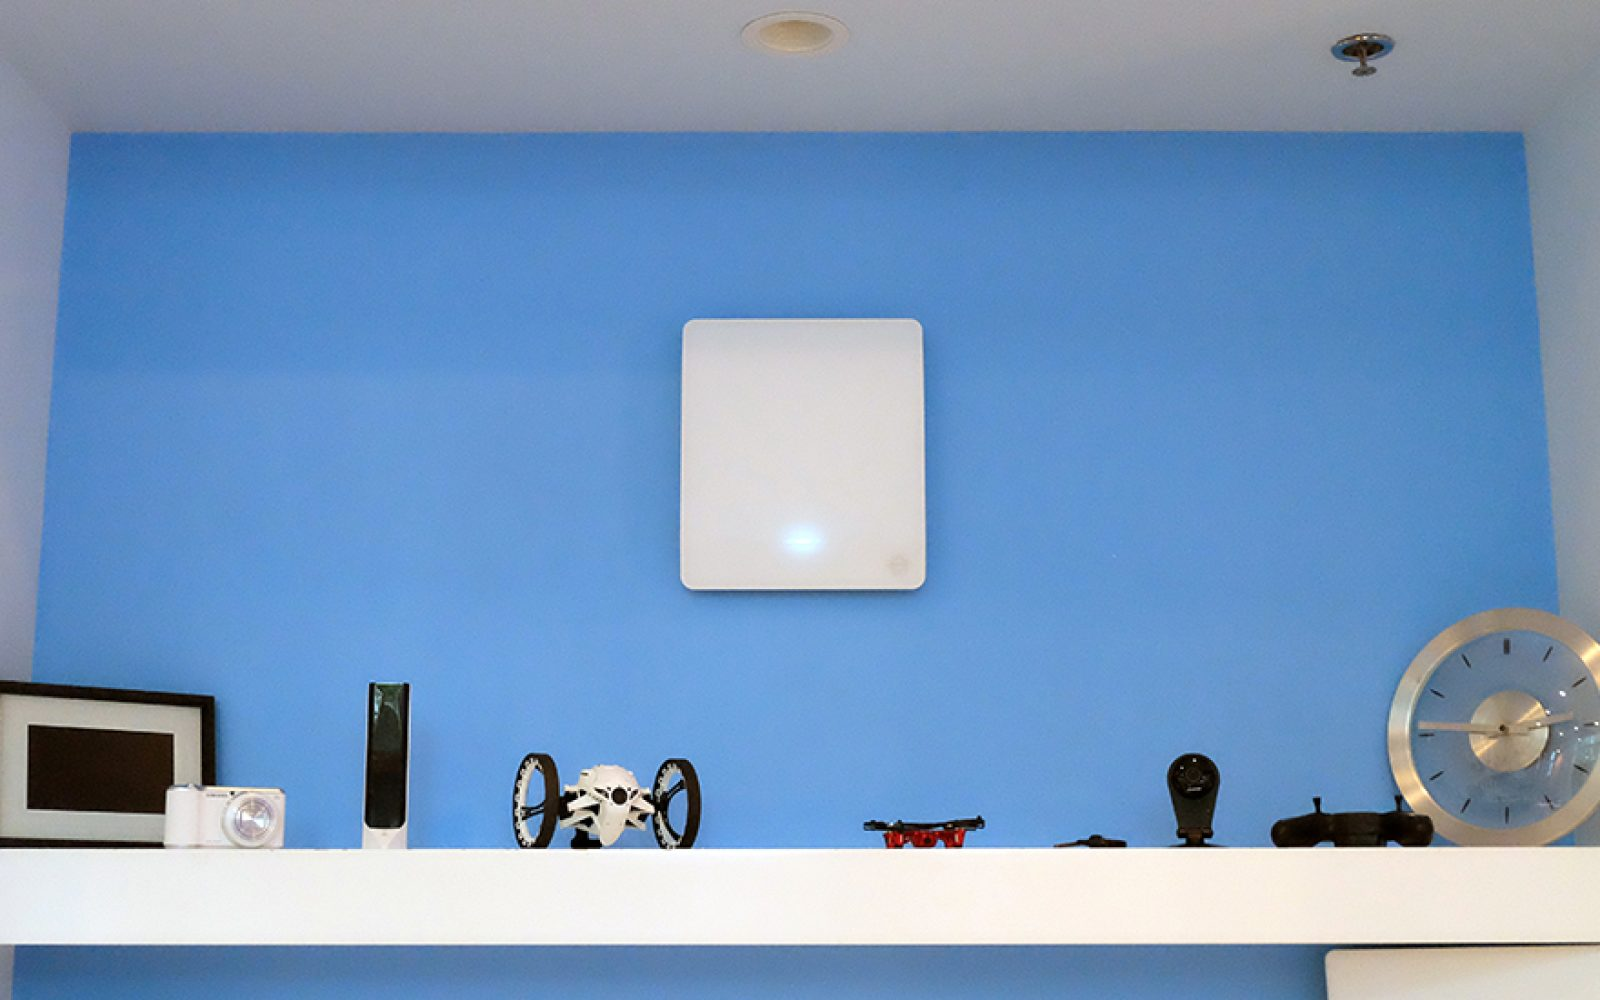 iPad-controlled wireless power system charges devices via WiFi up to 20 feet away